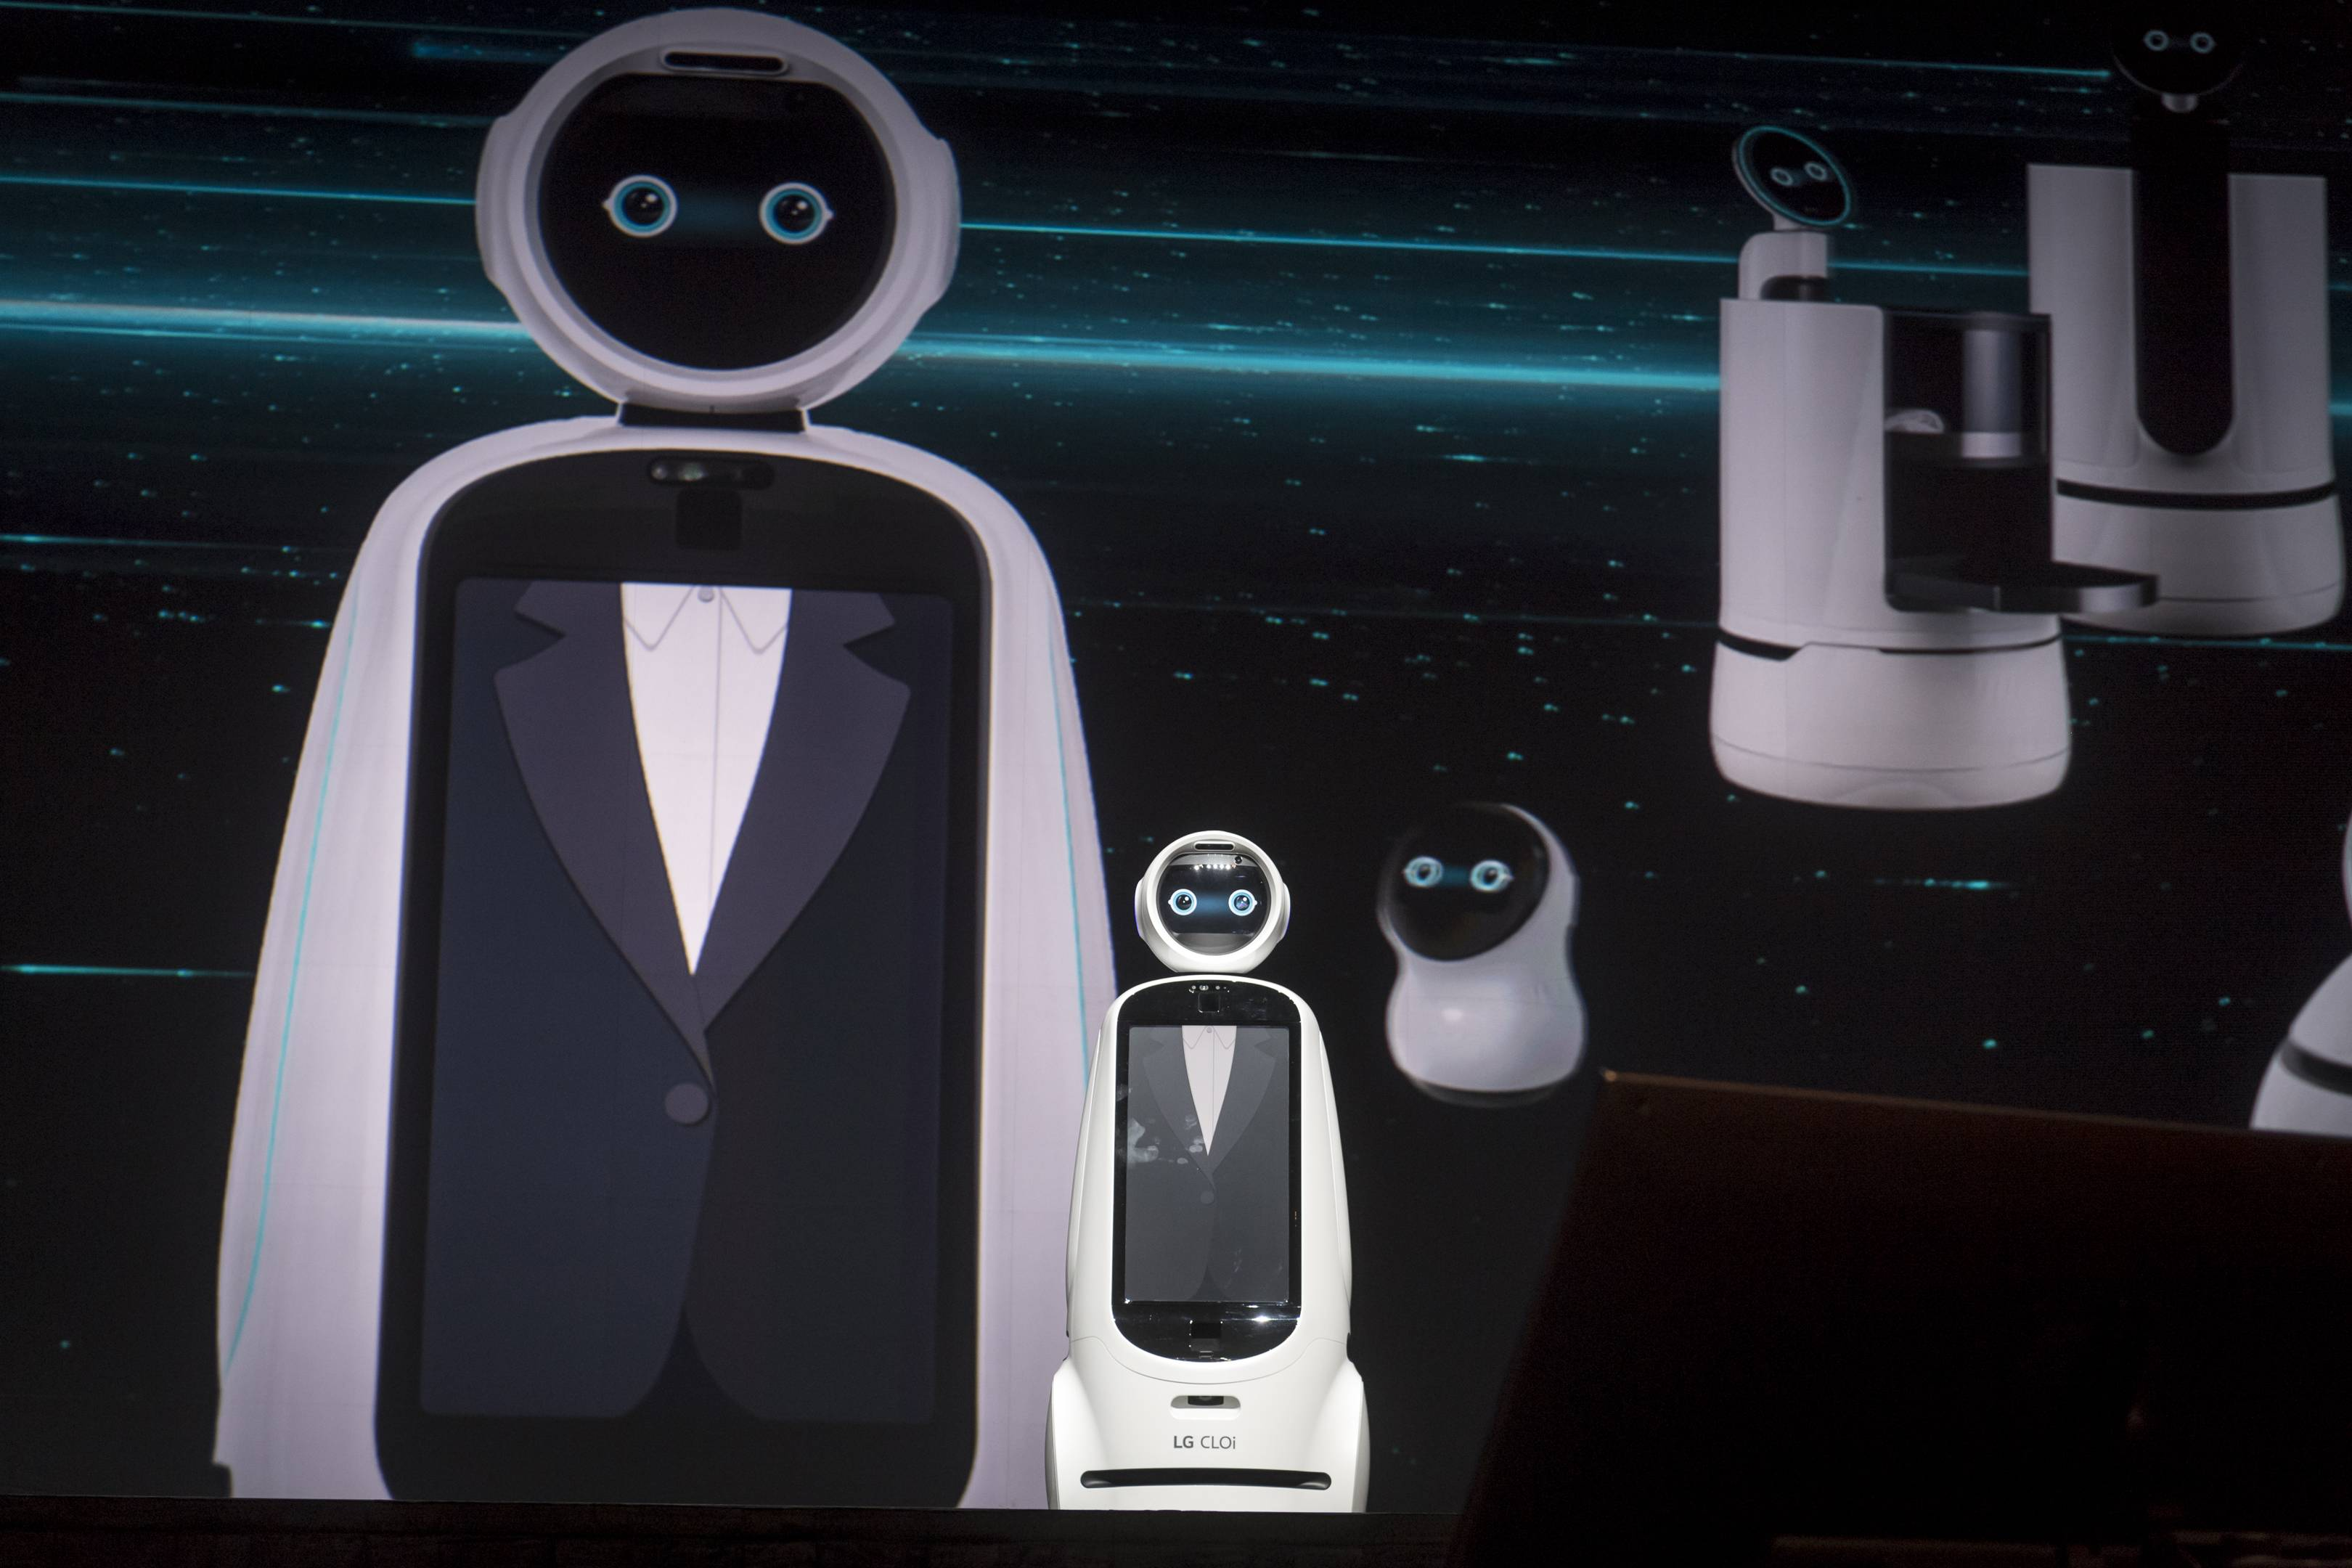 CES 2019 Highlights: All the biggest news from Las Vegas tech show